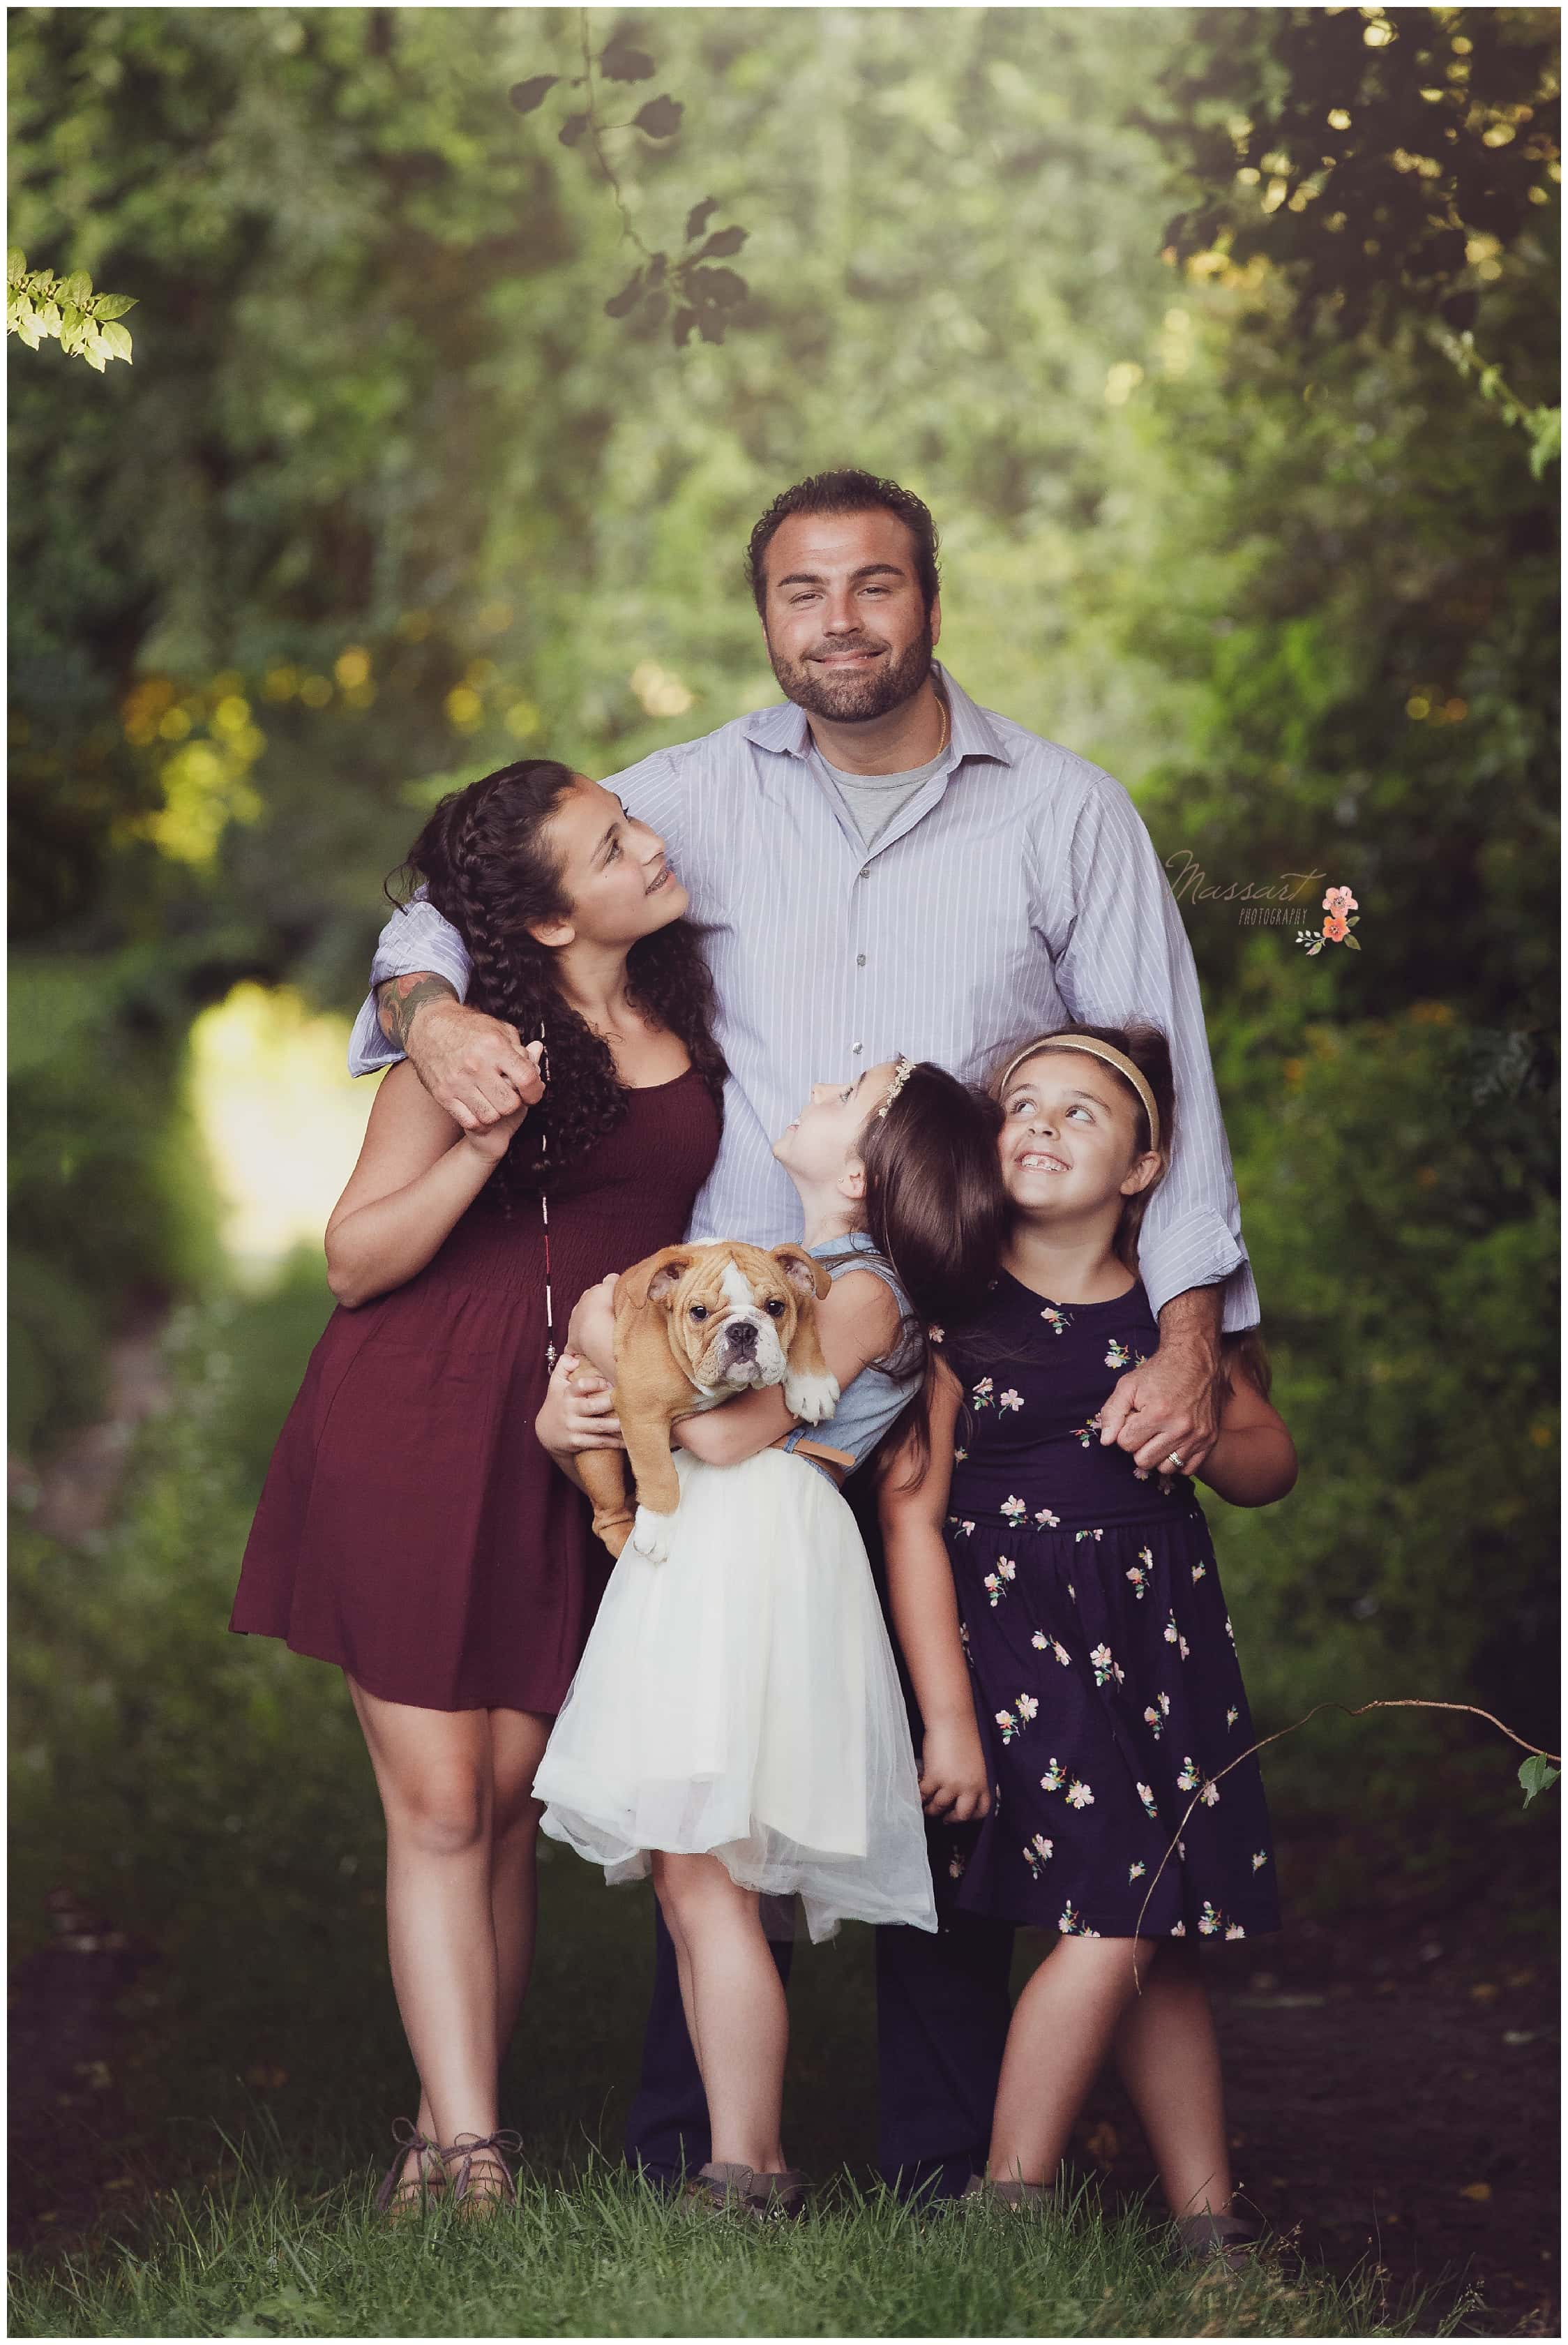 Dad and his daughters stand together under the trees during their family portrait session photographed by Massart Photography Rhode Island